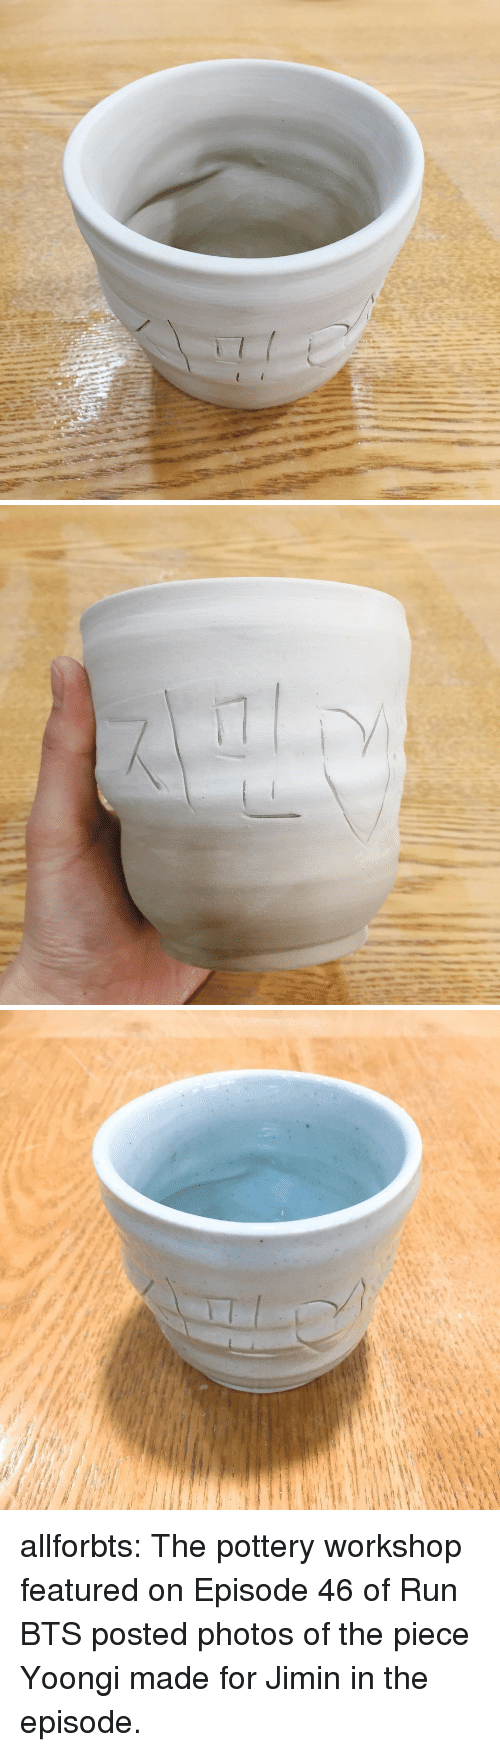 Run, Tumblr, and Blog: allforbts:  The pottery workshop featured on Episode 46 of Run BTS posted photos of the piece Yoongi made for Jimin in the episode.